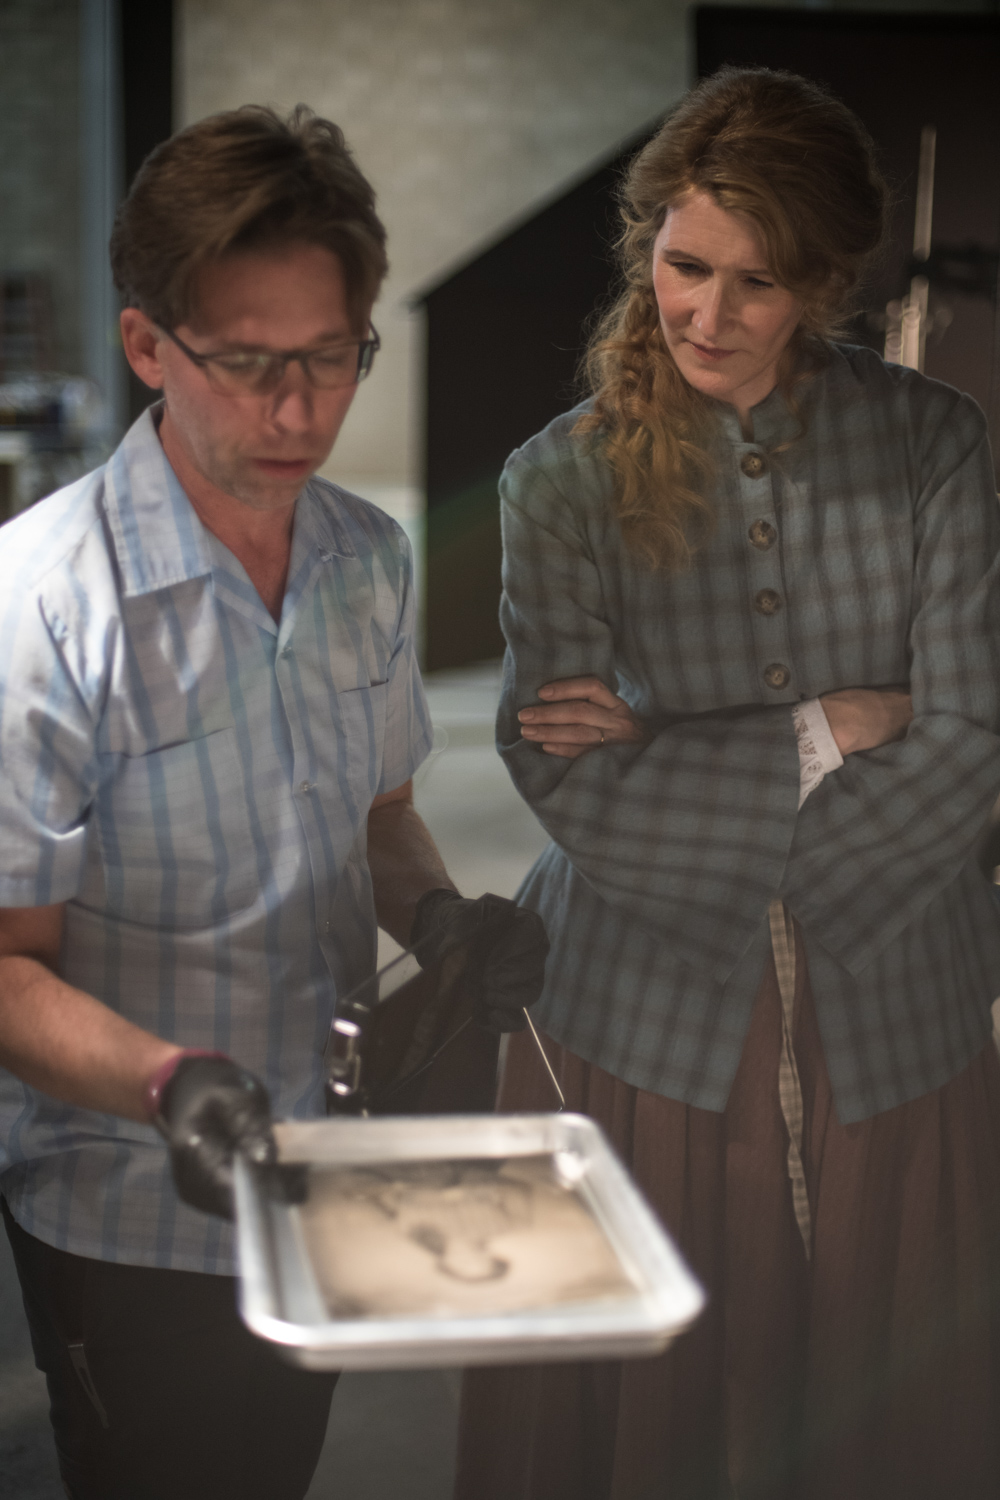 BTS Wilson Webb showing Laura Dern the wet plate development process (Credit Kimberly Scarsella)